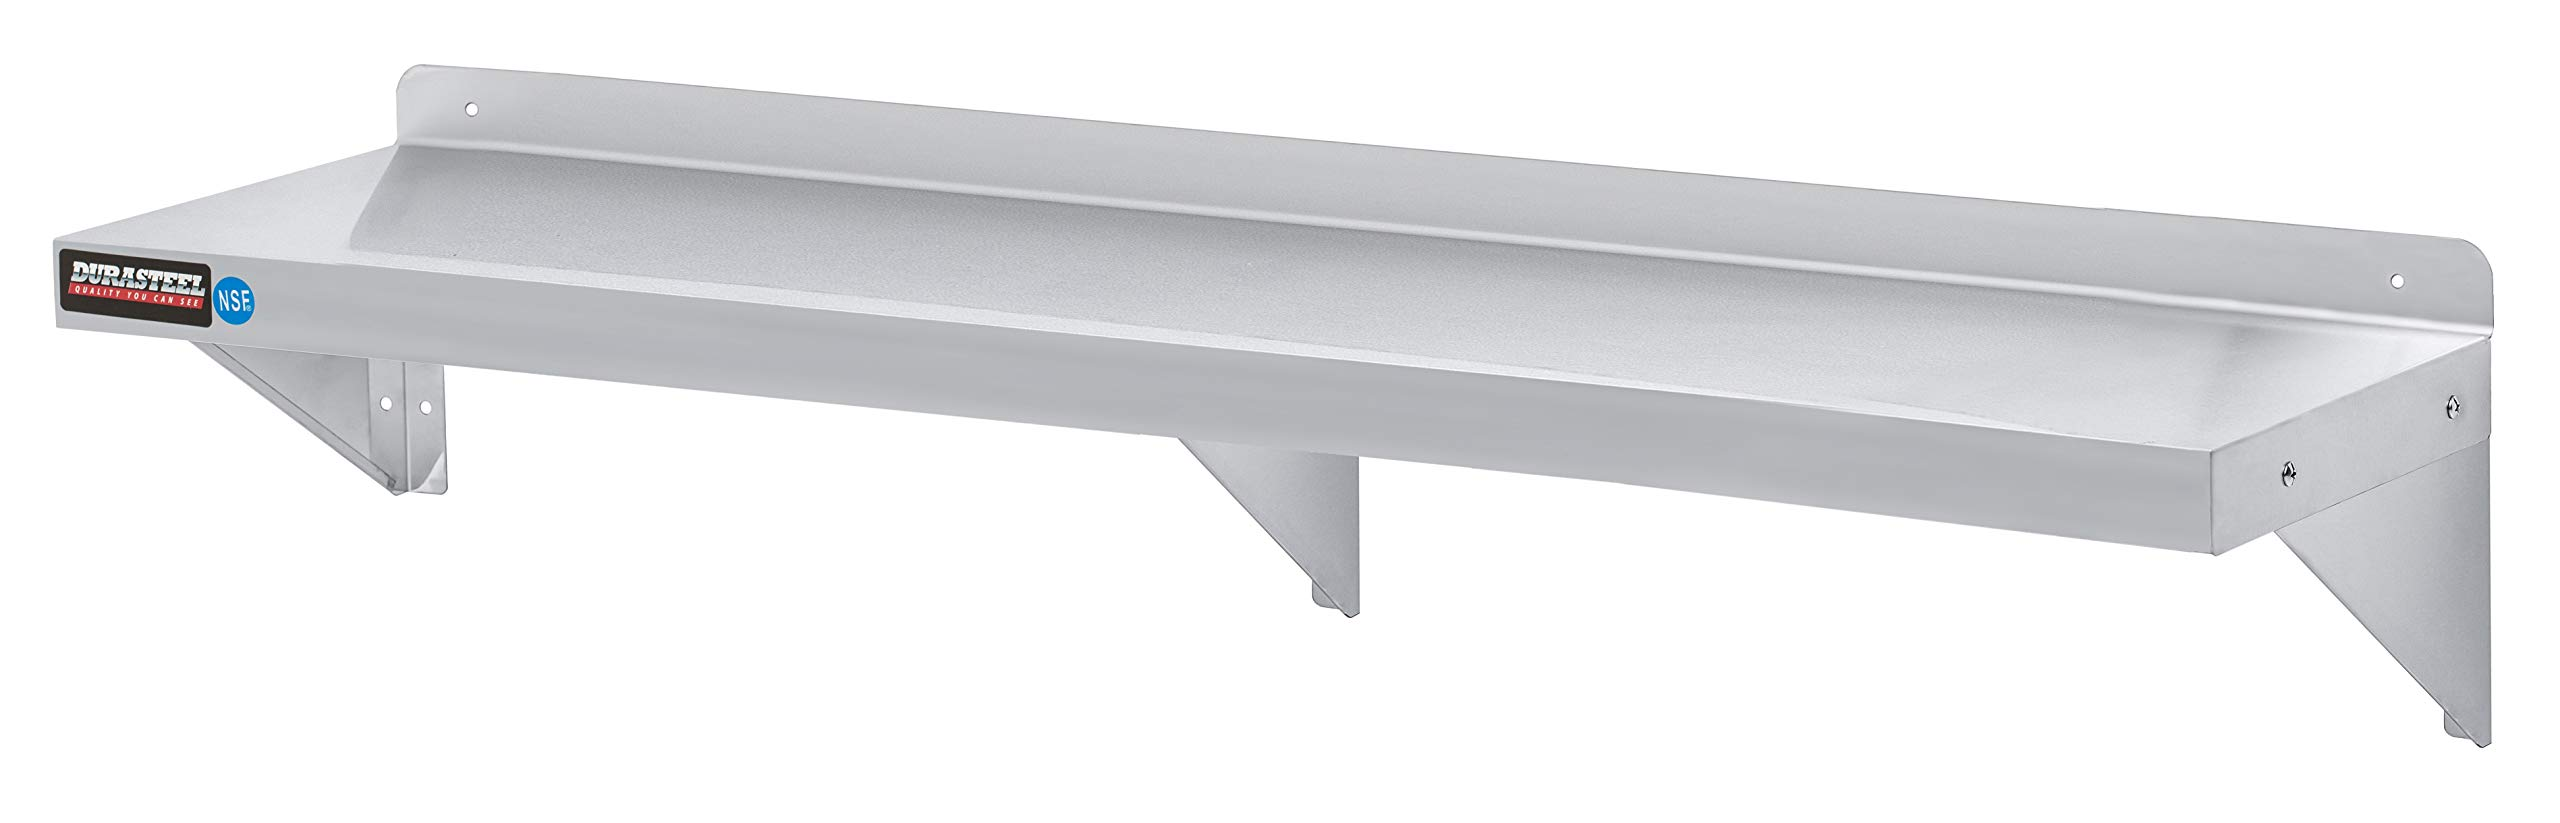 DuraSteel Stainless Steel Wall Shelf 72'' Wide x 12'' Deep Commercial Grade - NSF Approved - Industrial Appliance Equipment (Restaurant, Bar, Home, Kitchen, Laundry, Garage and Utility Room)